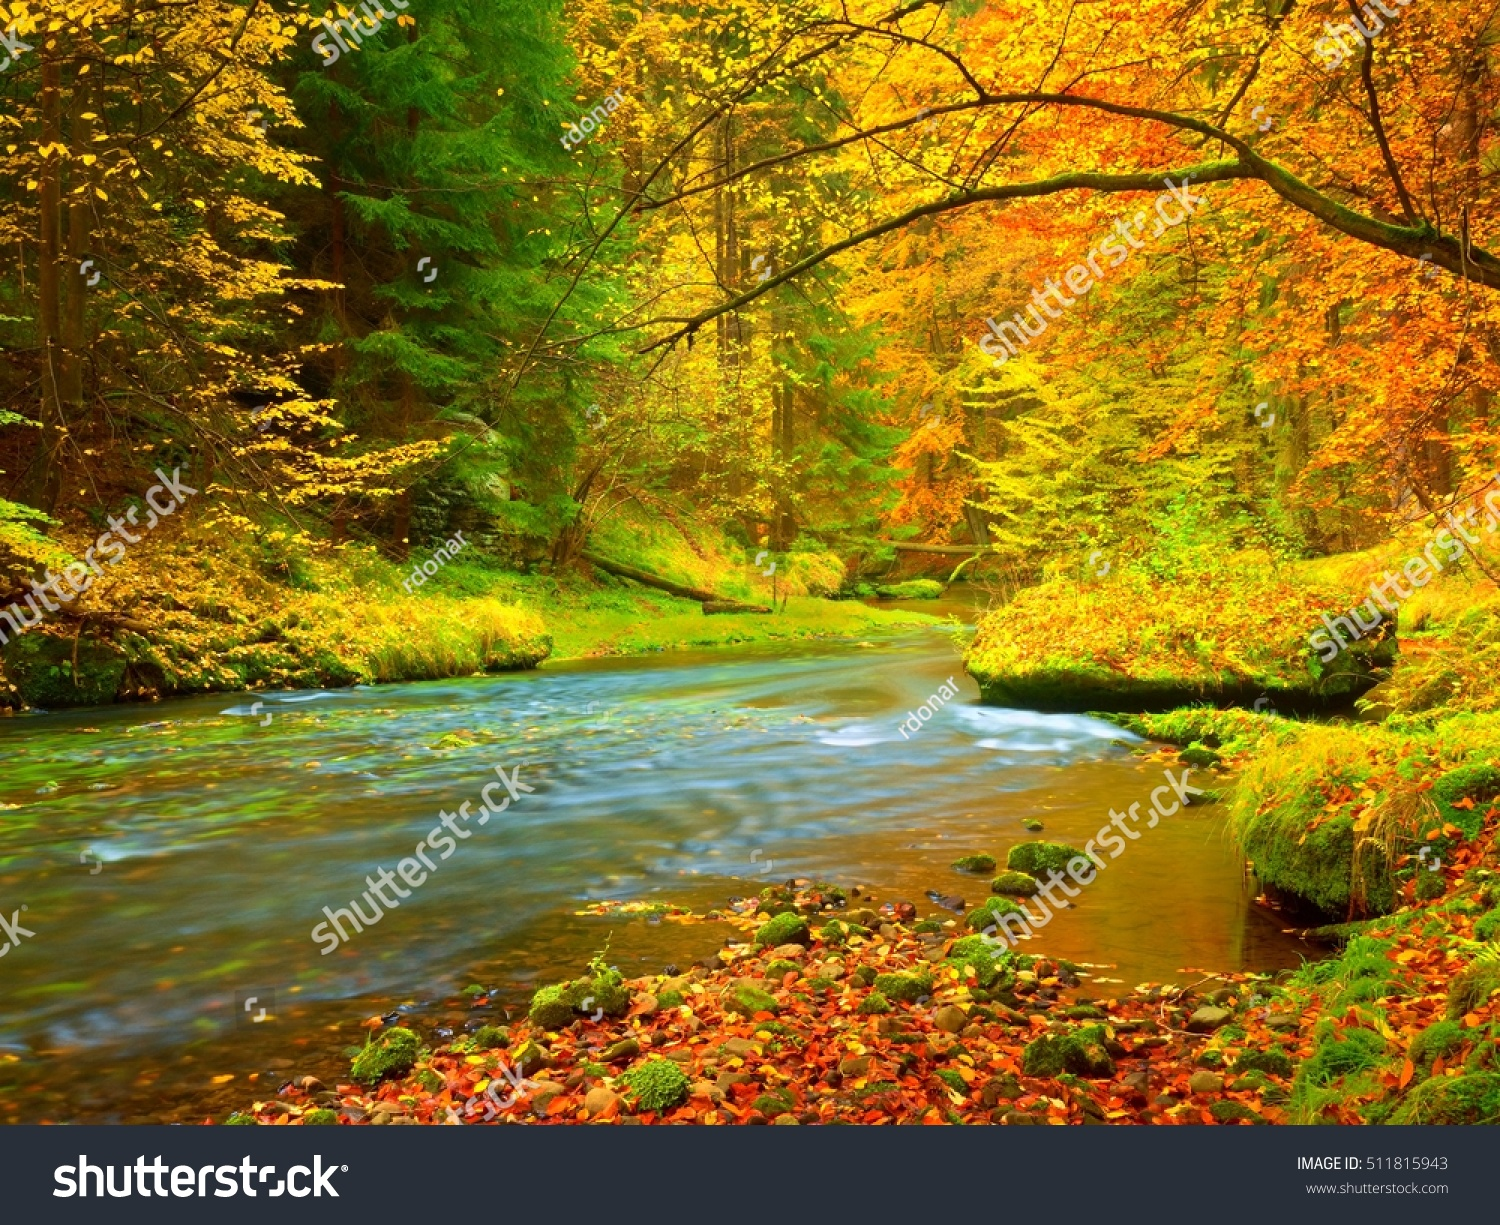 Autumn Landscape Colorful Leaves On Trees Stock Photo (Edit Now ...